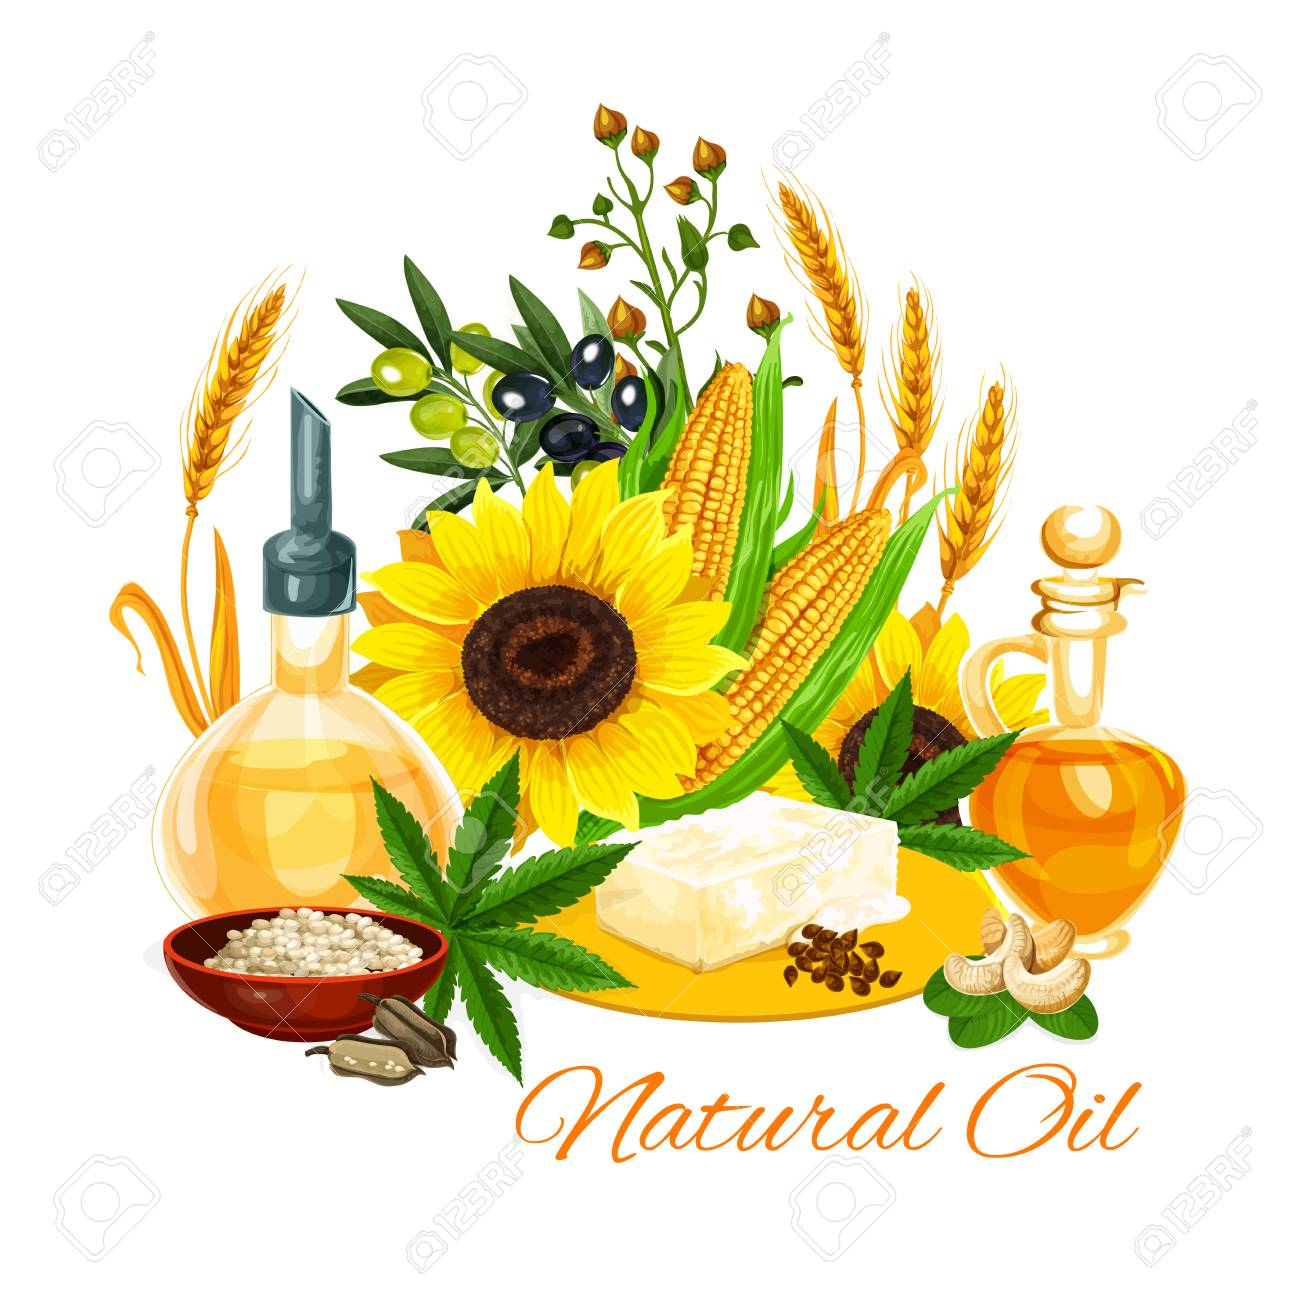 Natural oil and butter variety poster  Sunflower seeds, olive